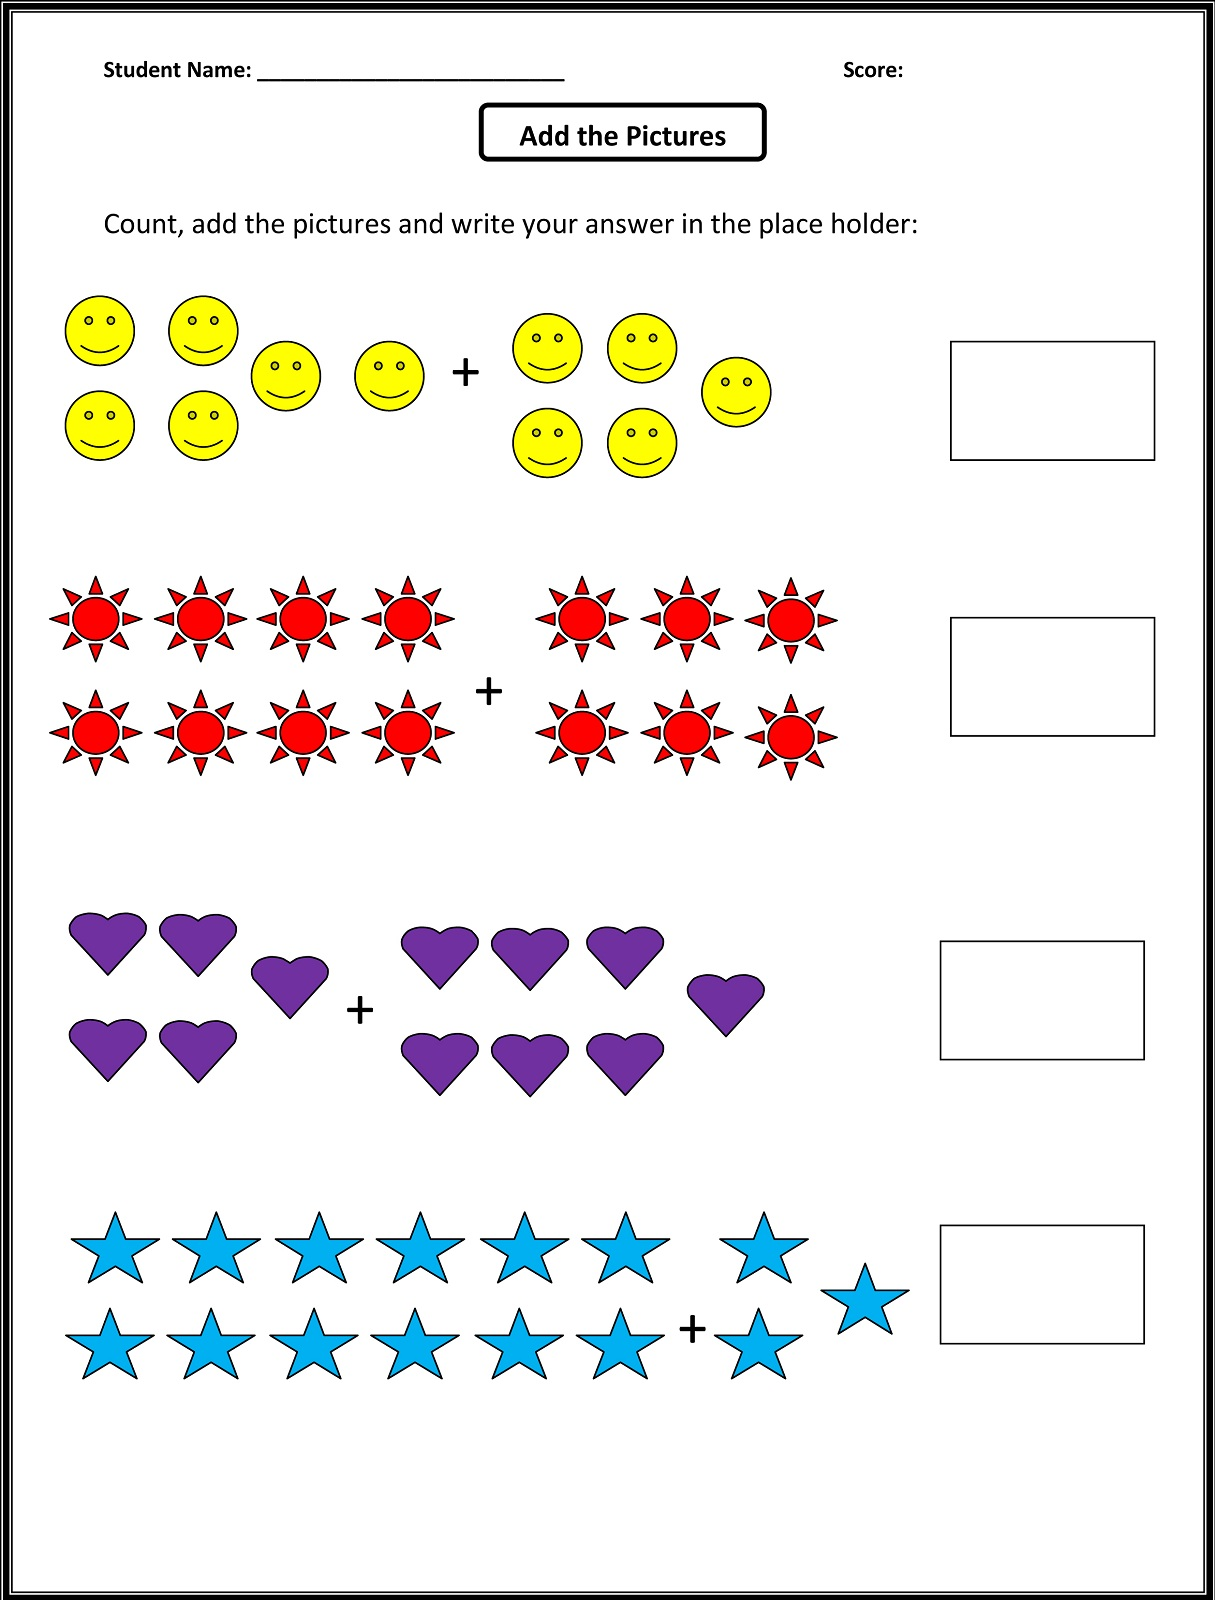 Basic subtraction worksheets for first grade